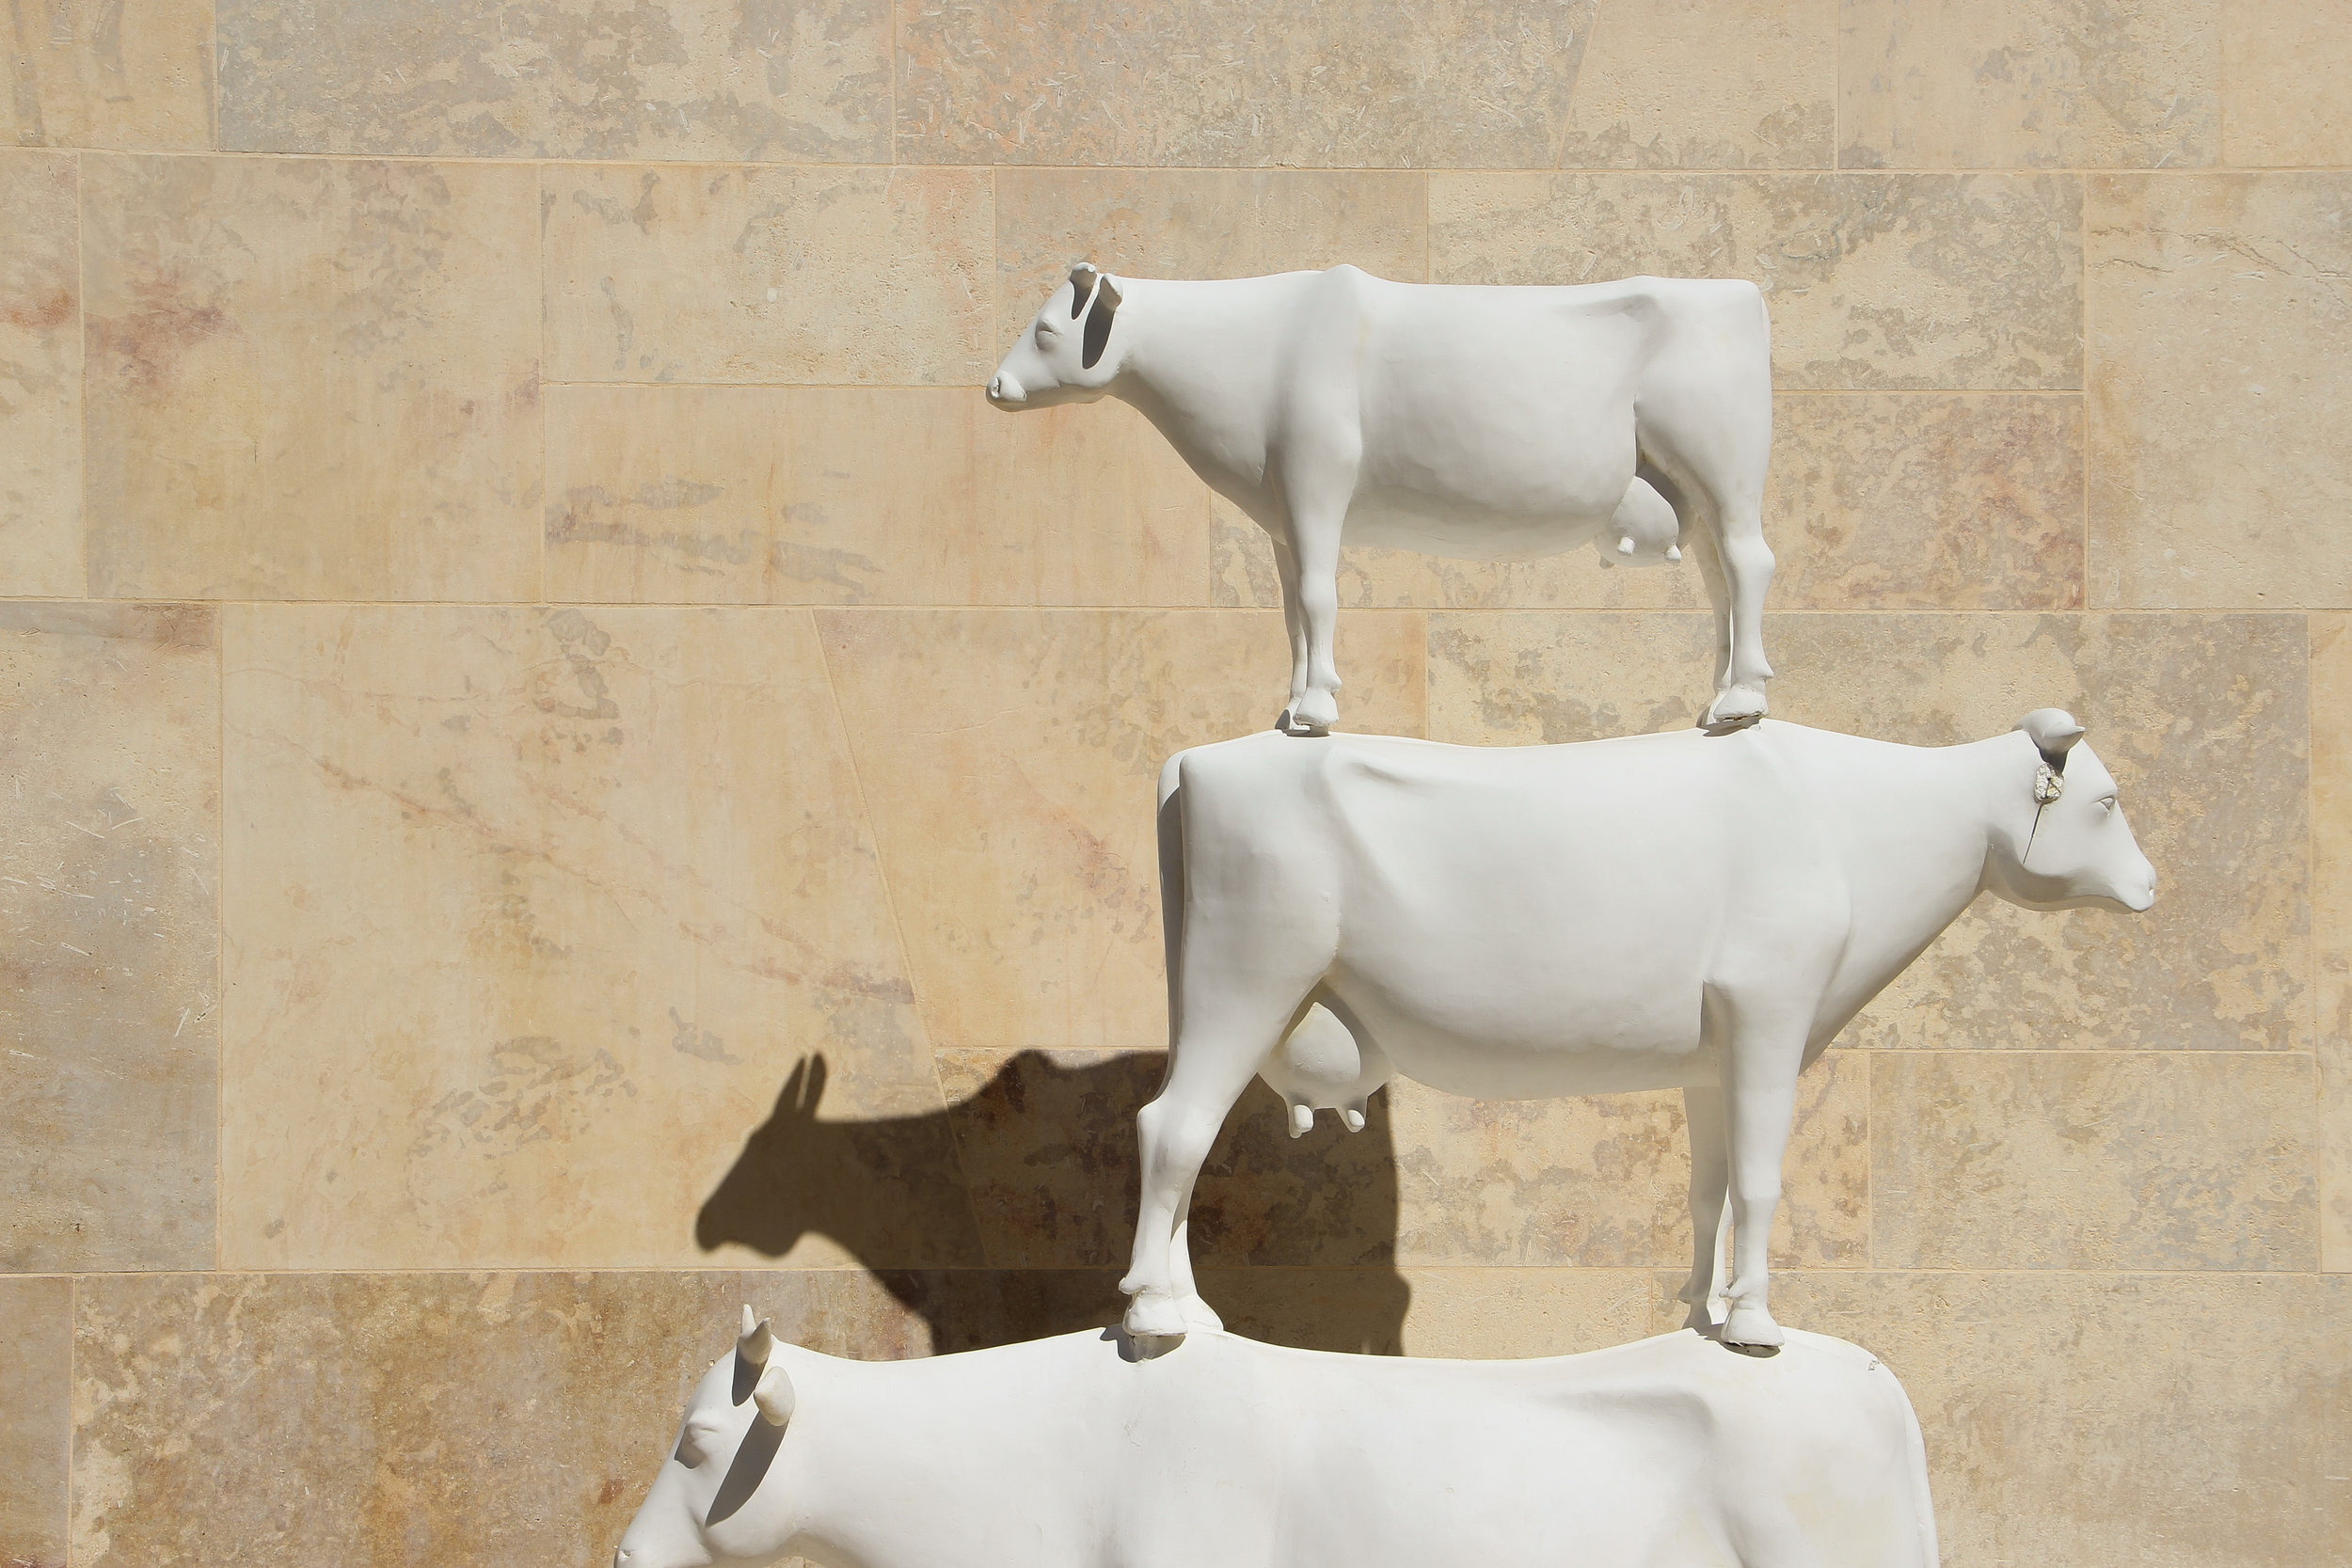 Friends with Vegans A sculpture of three cows   Public Art Installation   Old Town of Valletta   - Thinking about appreciation for quality in Malta   Malta, Europe   DoLessGetMoreDone.com   - Canon Minimal Travel Documentary Photography - search for liveability   Sustainability